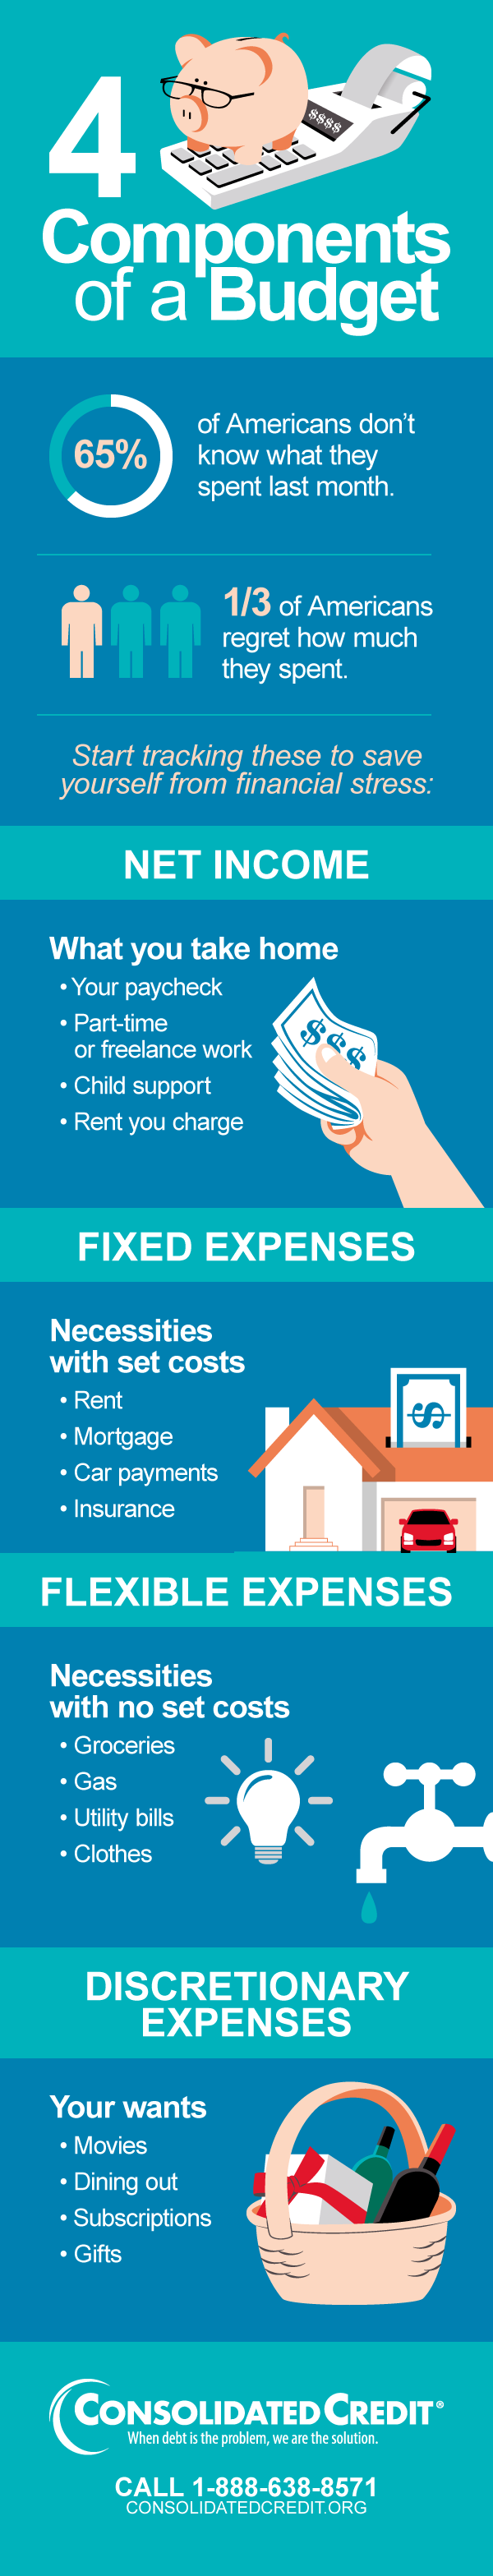 Consolidated Credit's infographic reveals the key components of a budget